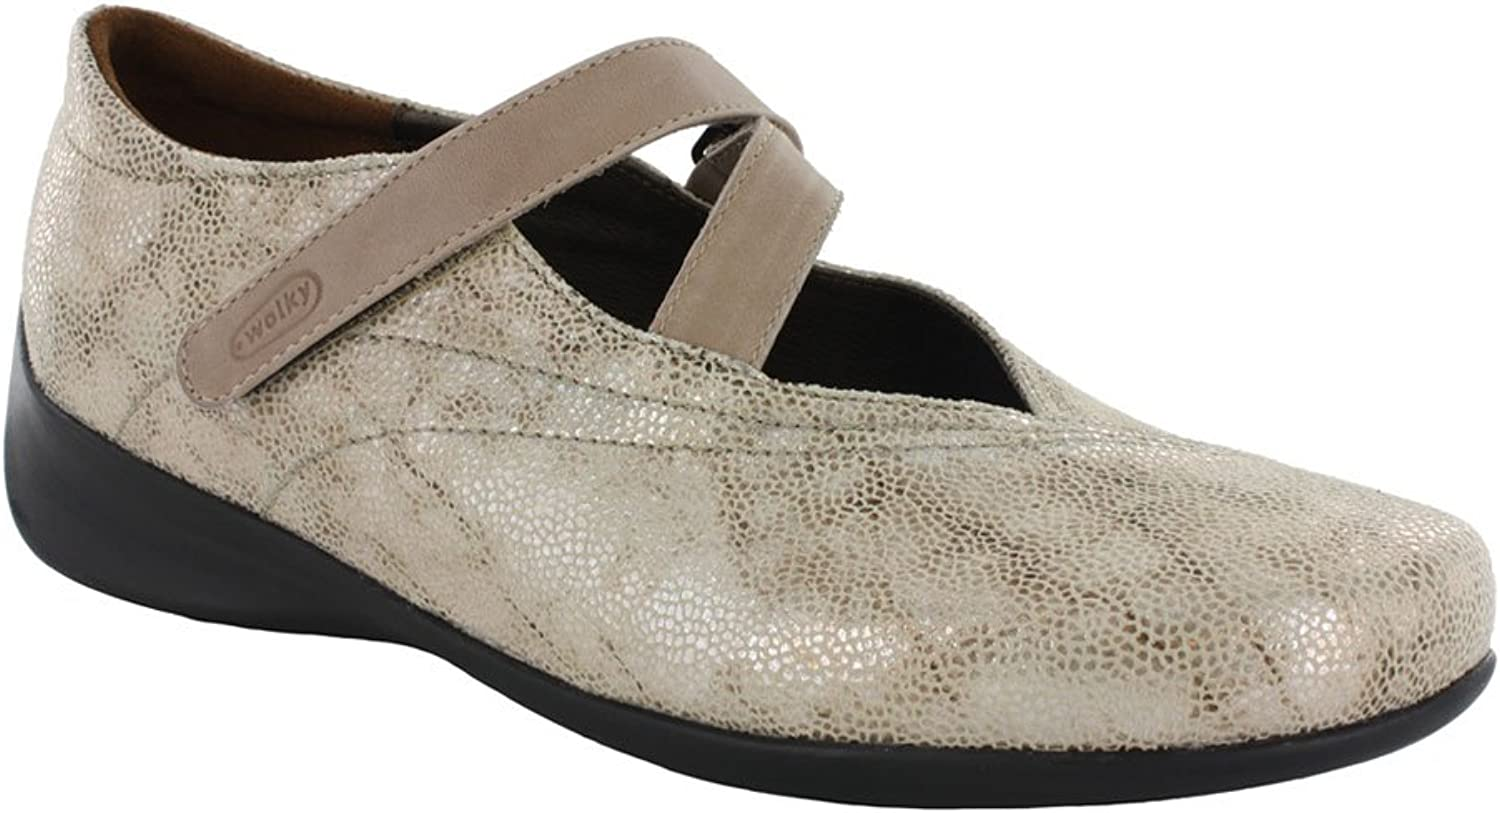 Wolky Comfort Mary Janes Silky